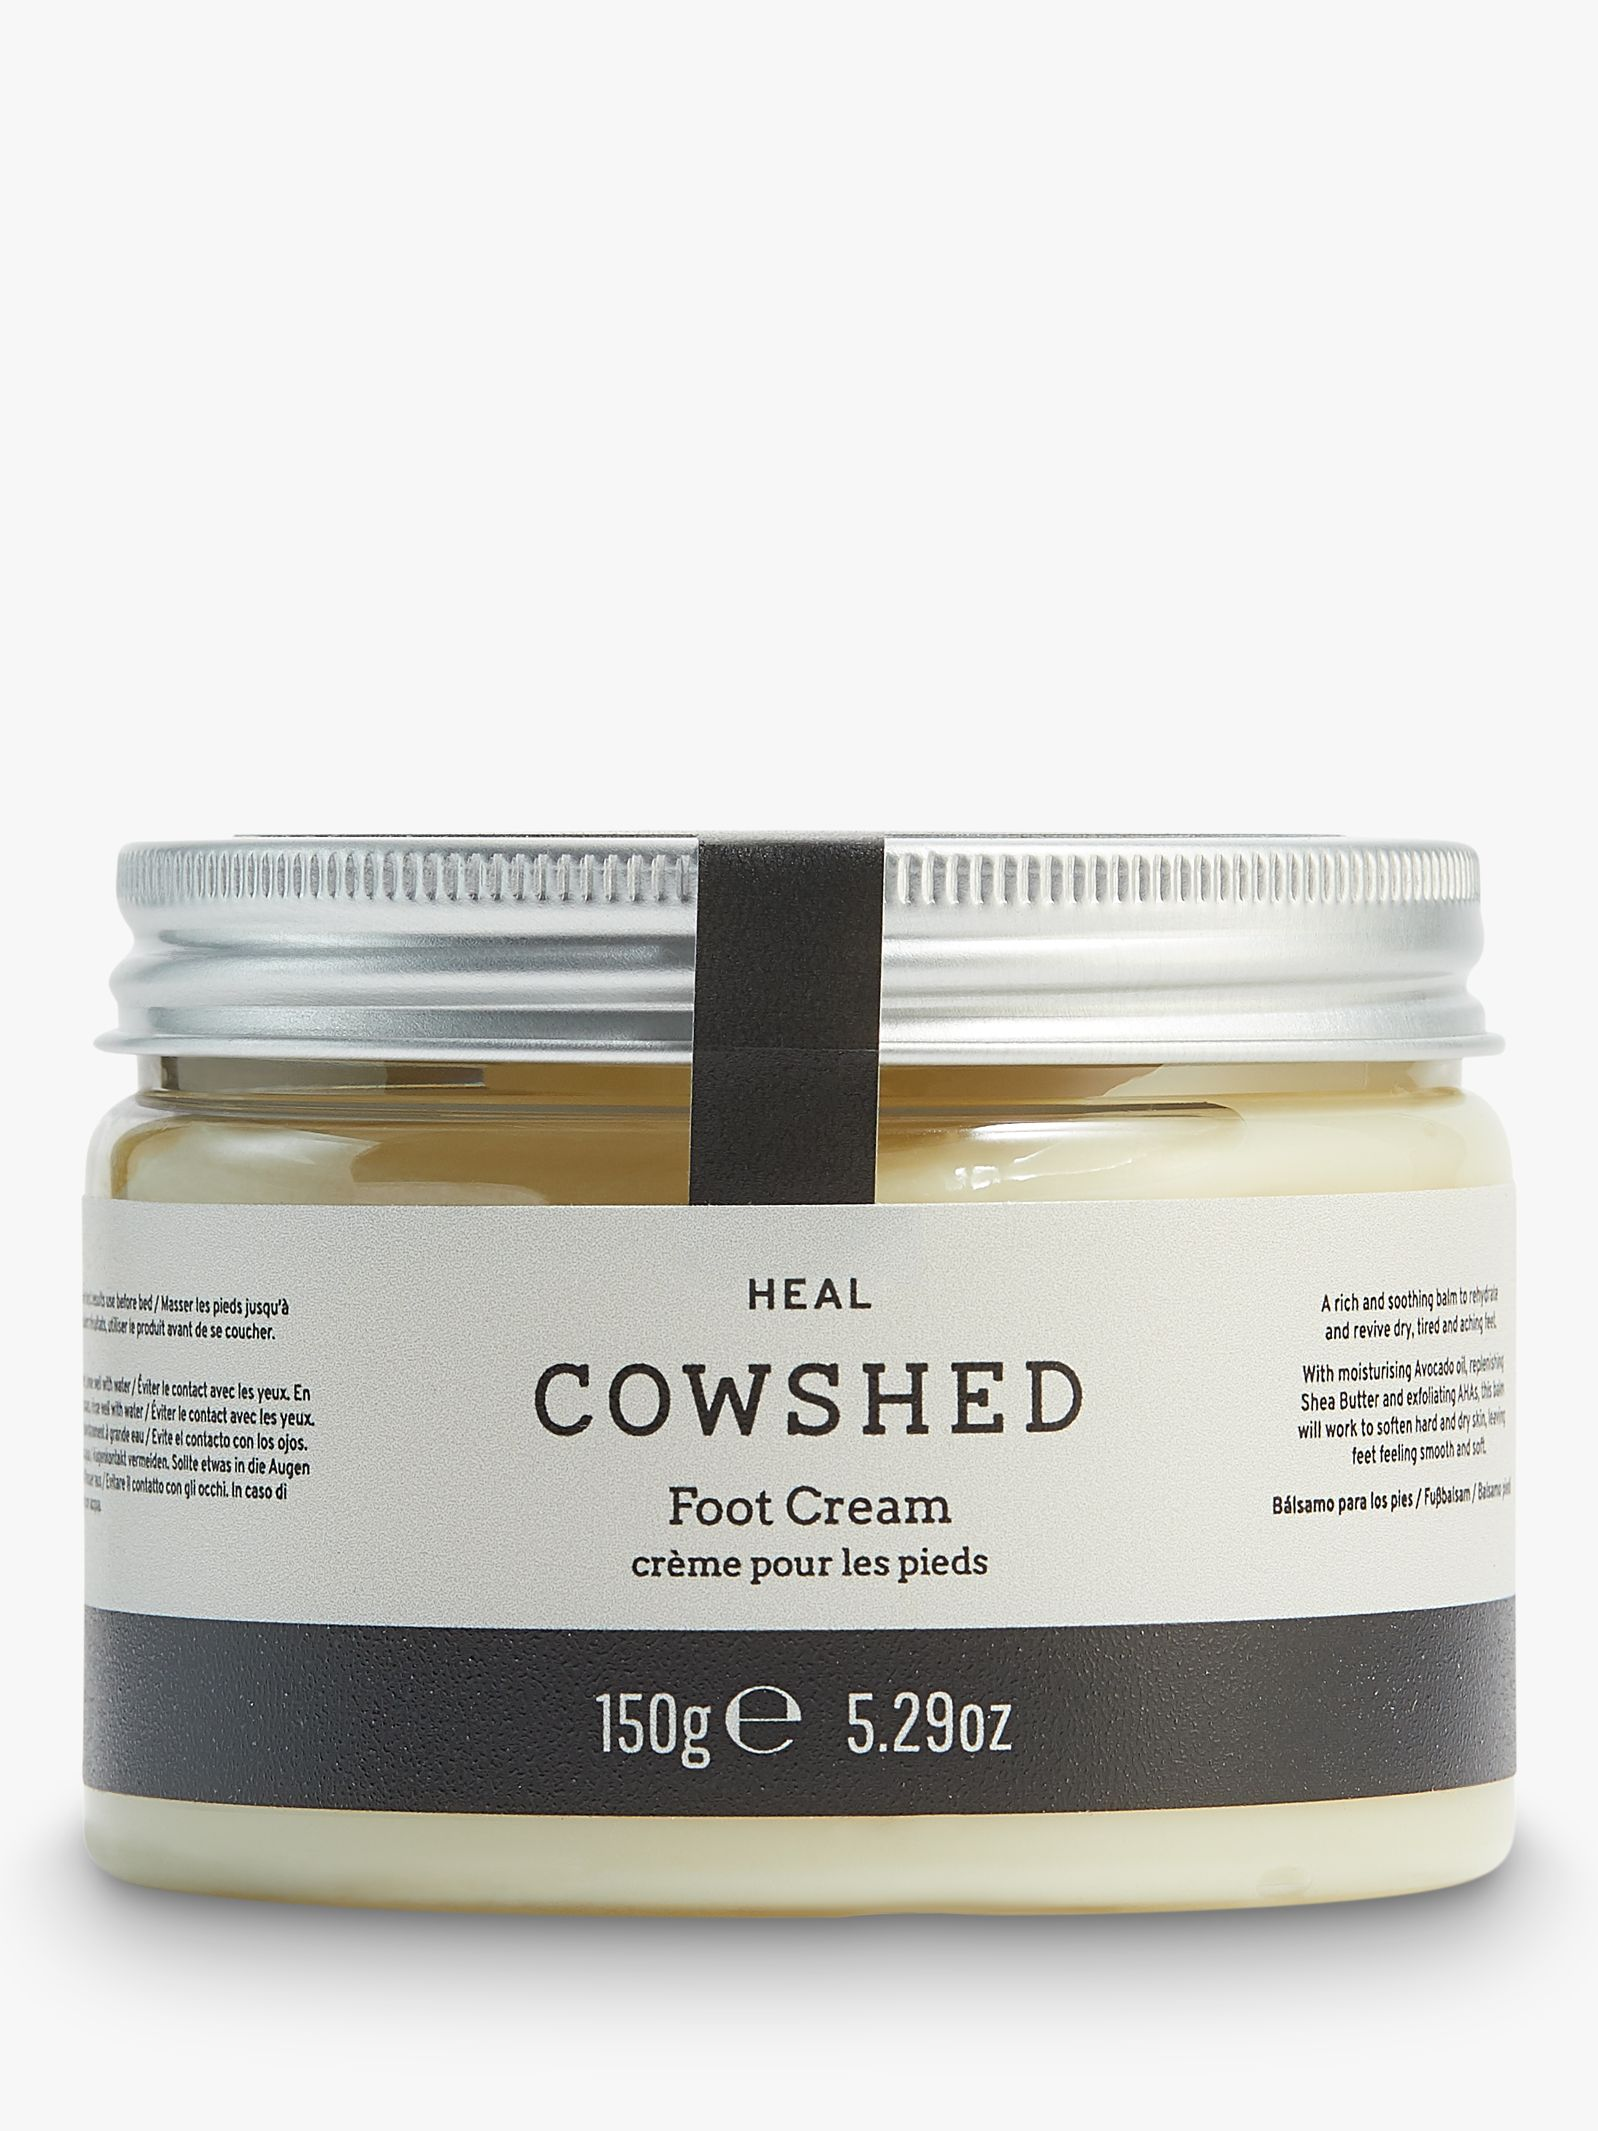 Cowshed Cowshed Heal Foot Cream, 150g